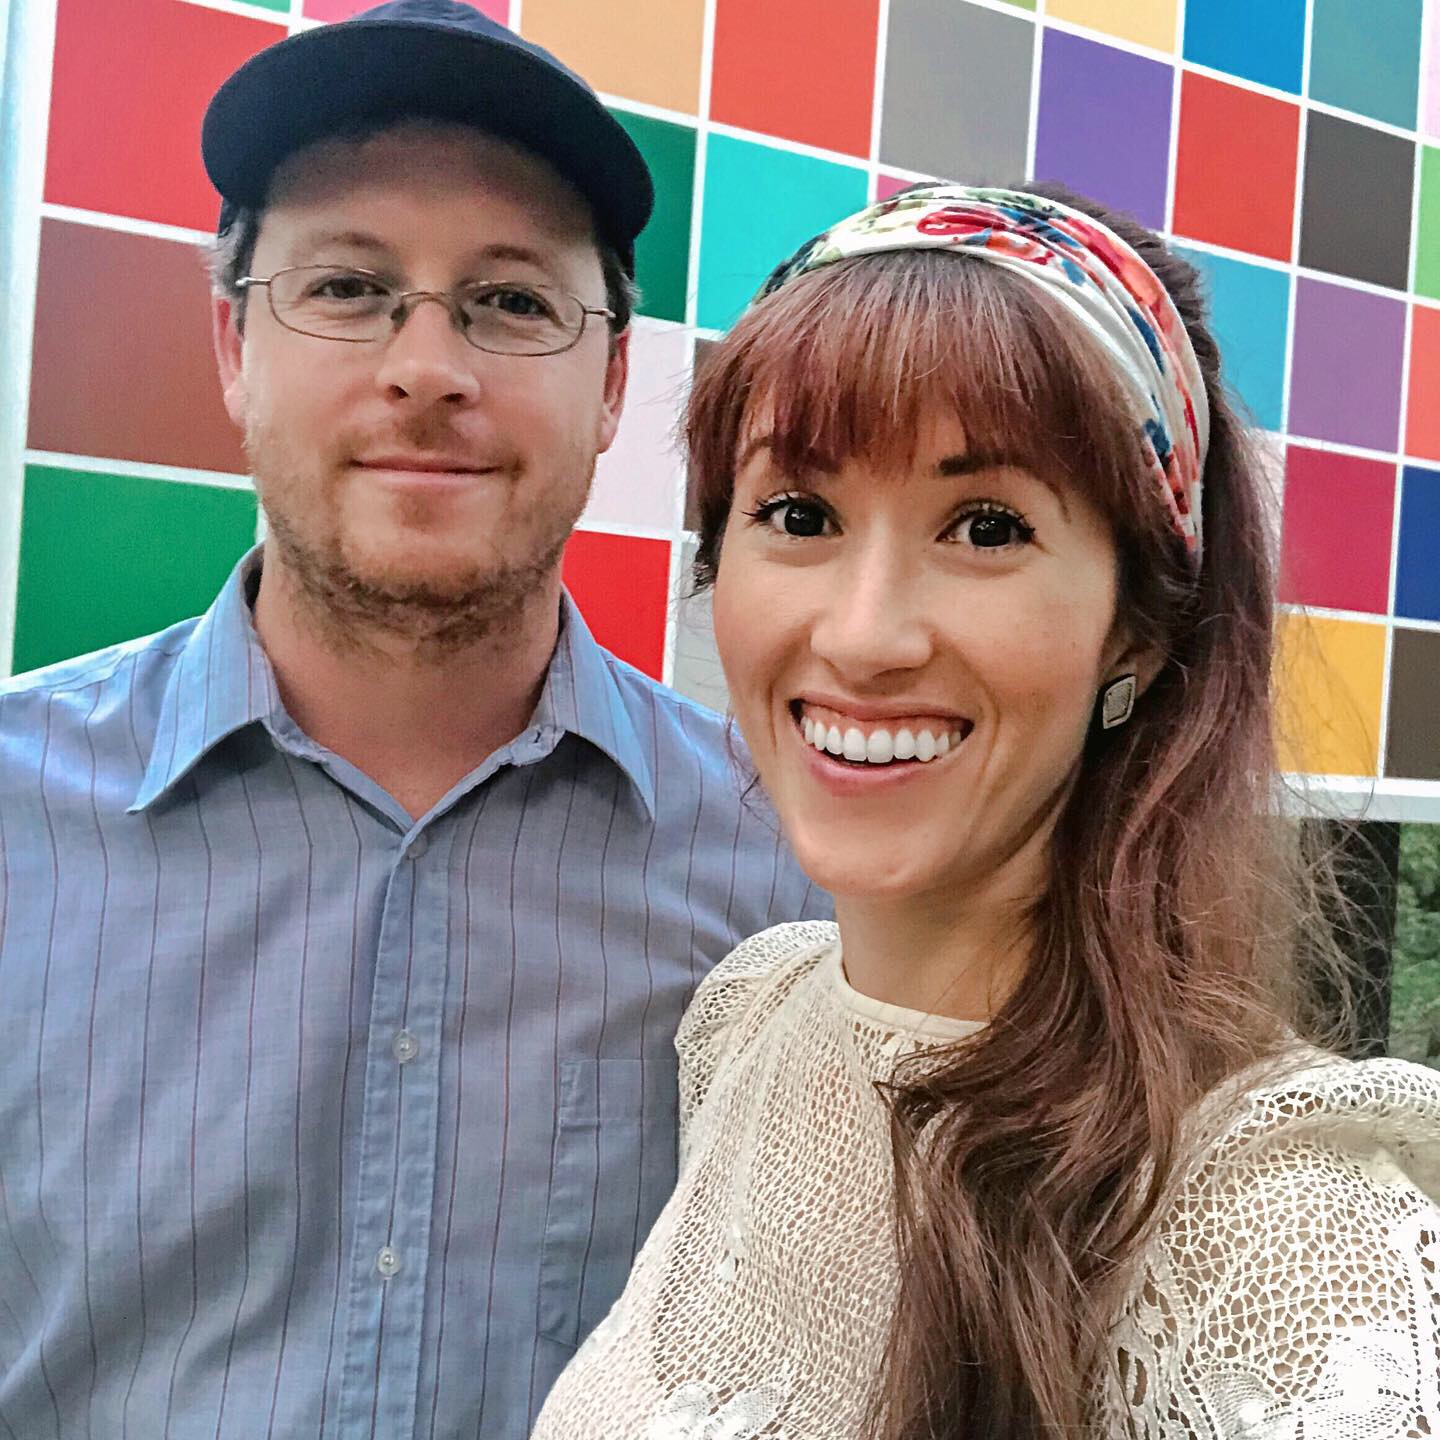 Nick Bahash and Alyssa Bird at Crystal Bridges Art Museum